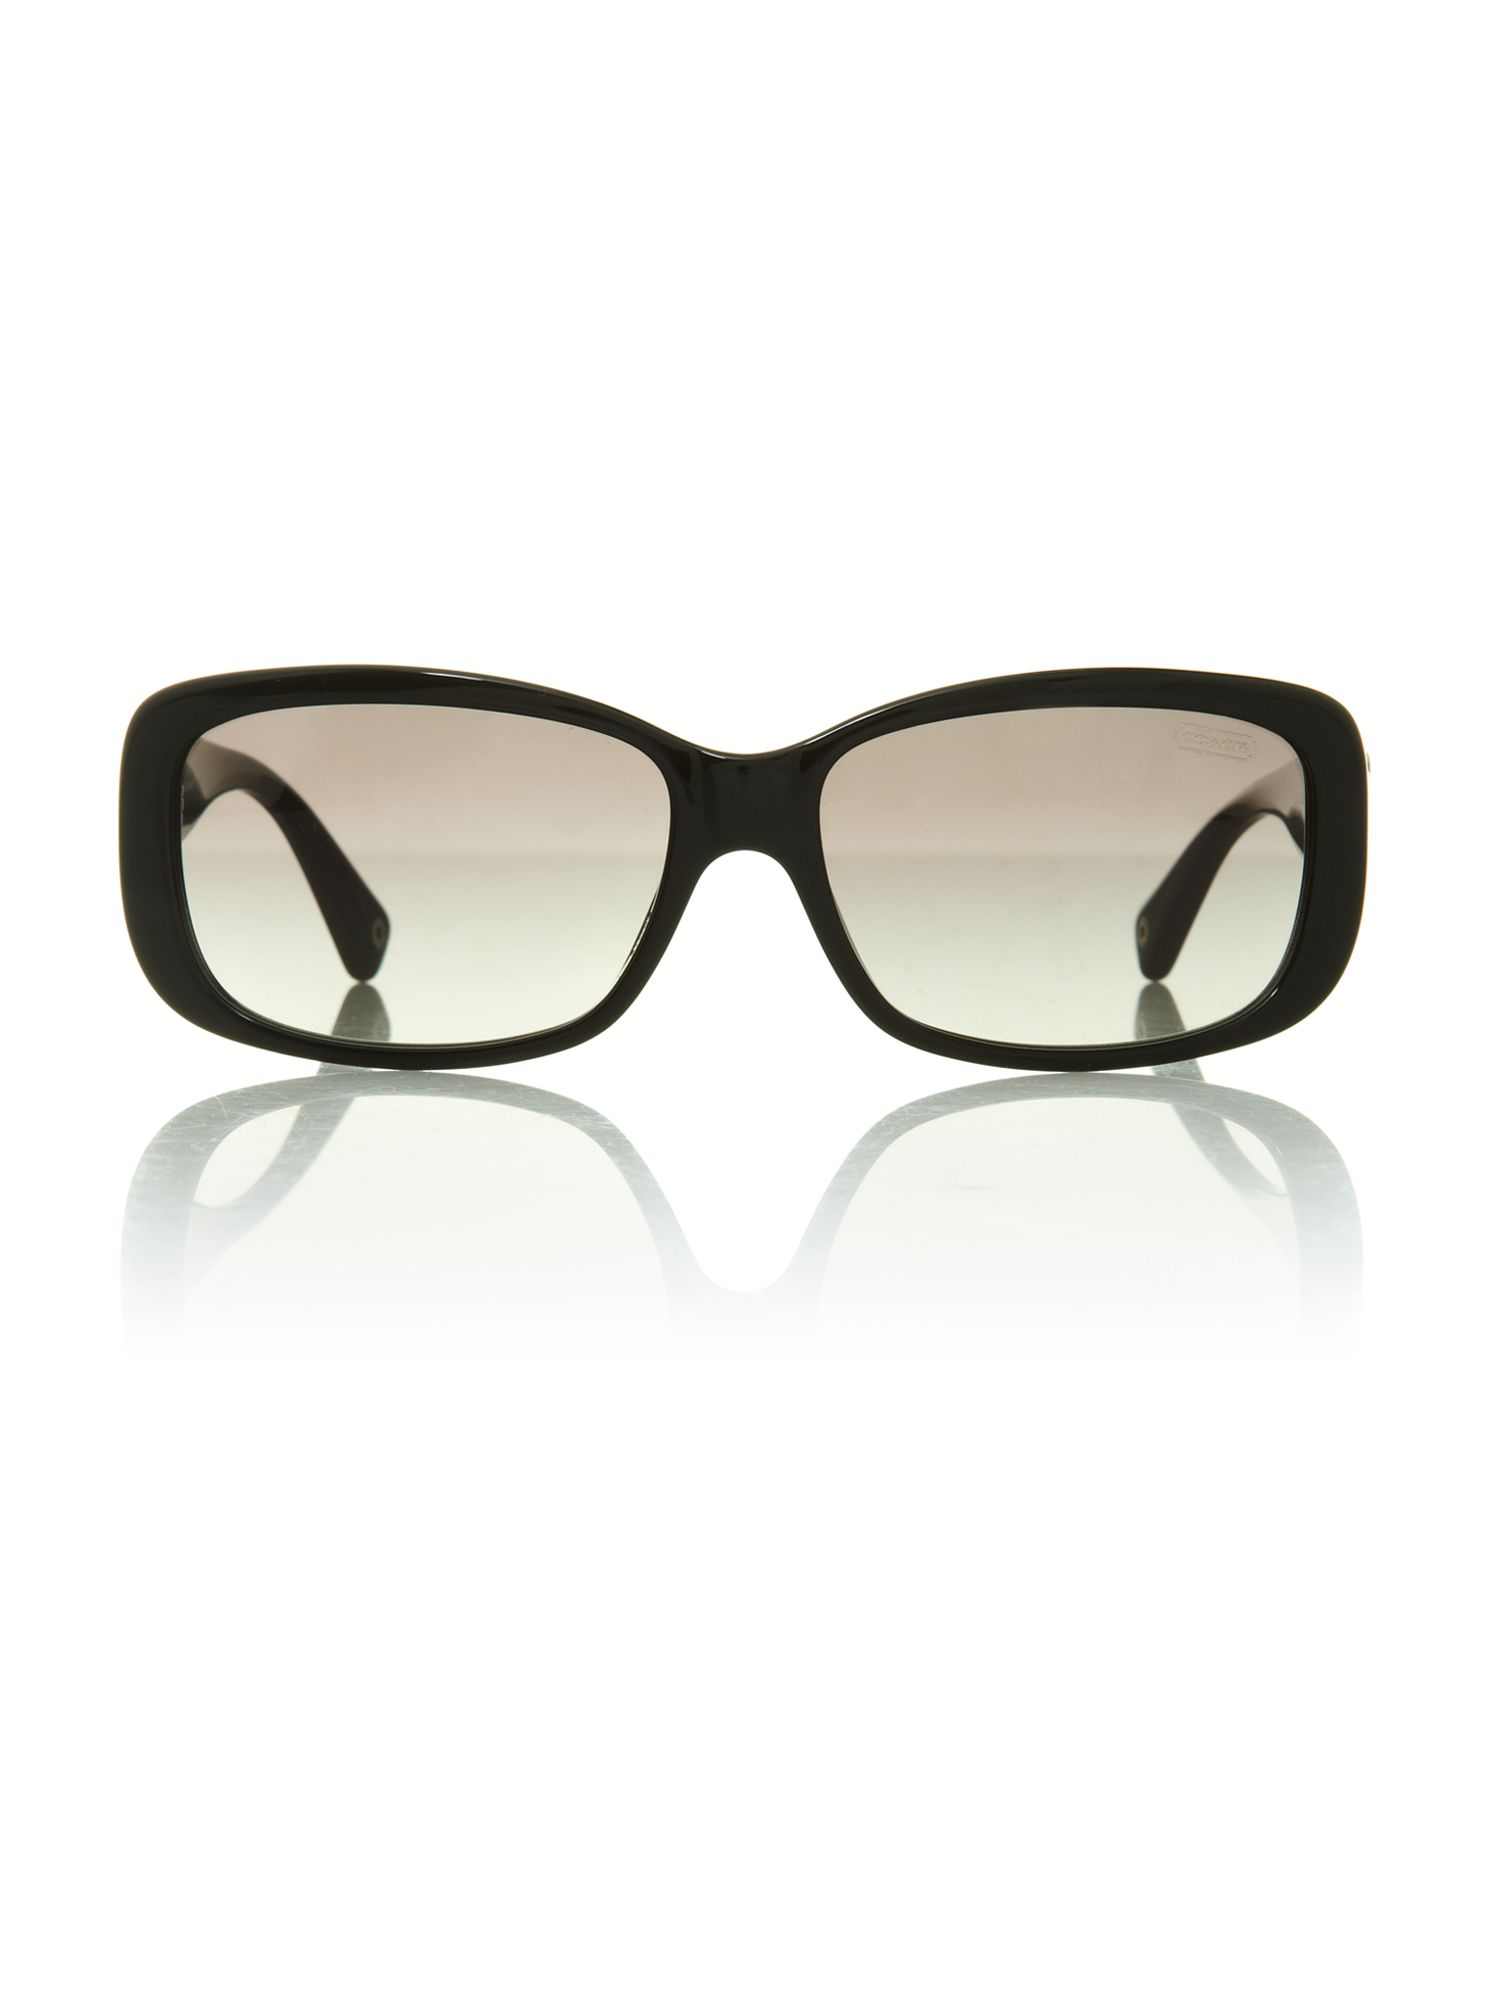 Ladies HC8041 black joanie sunglasses